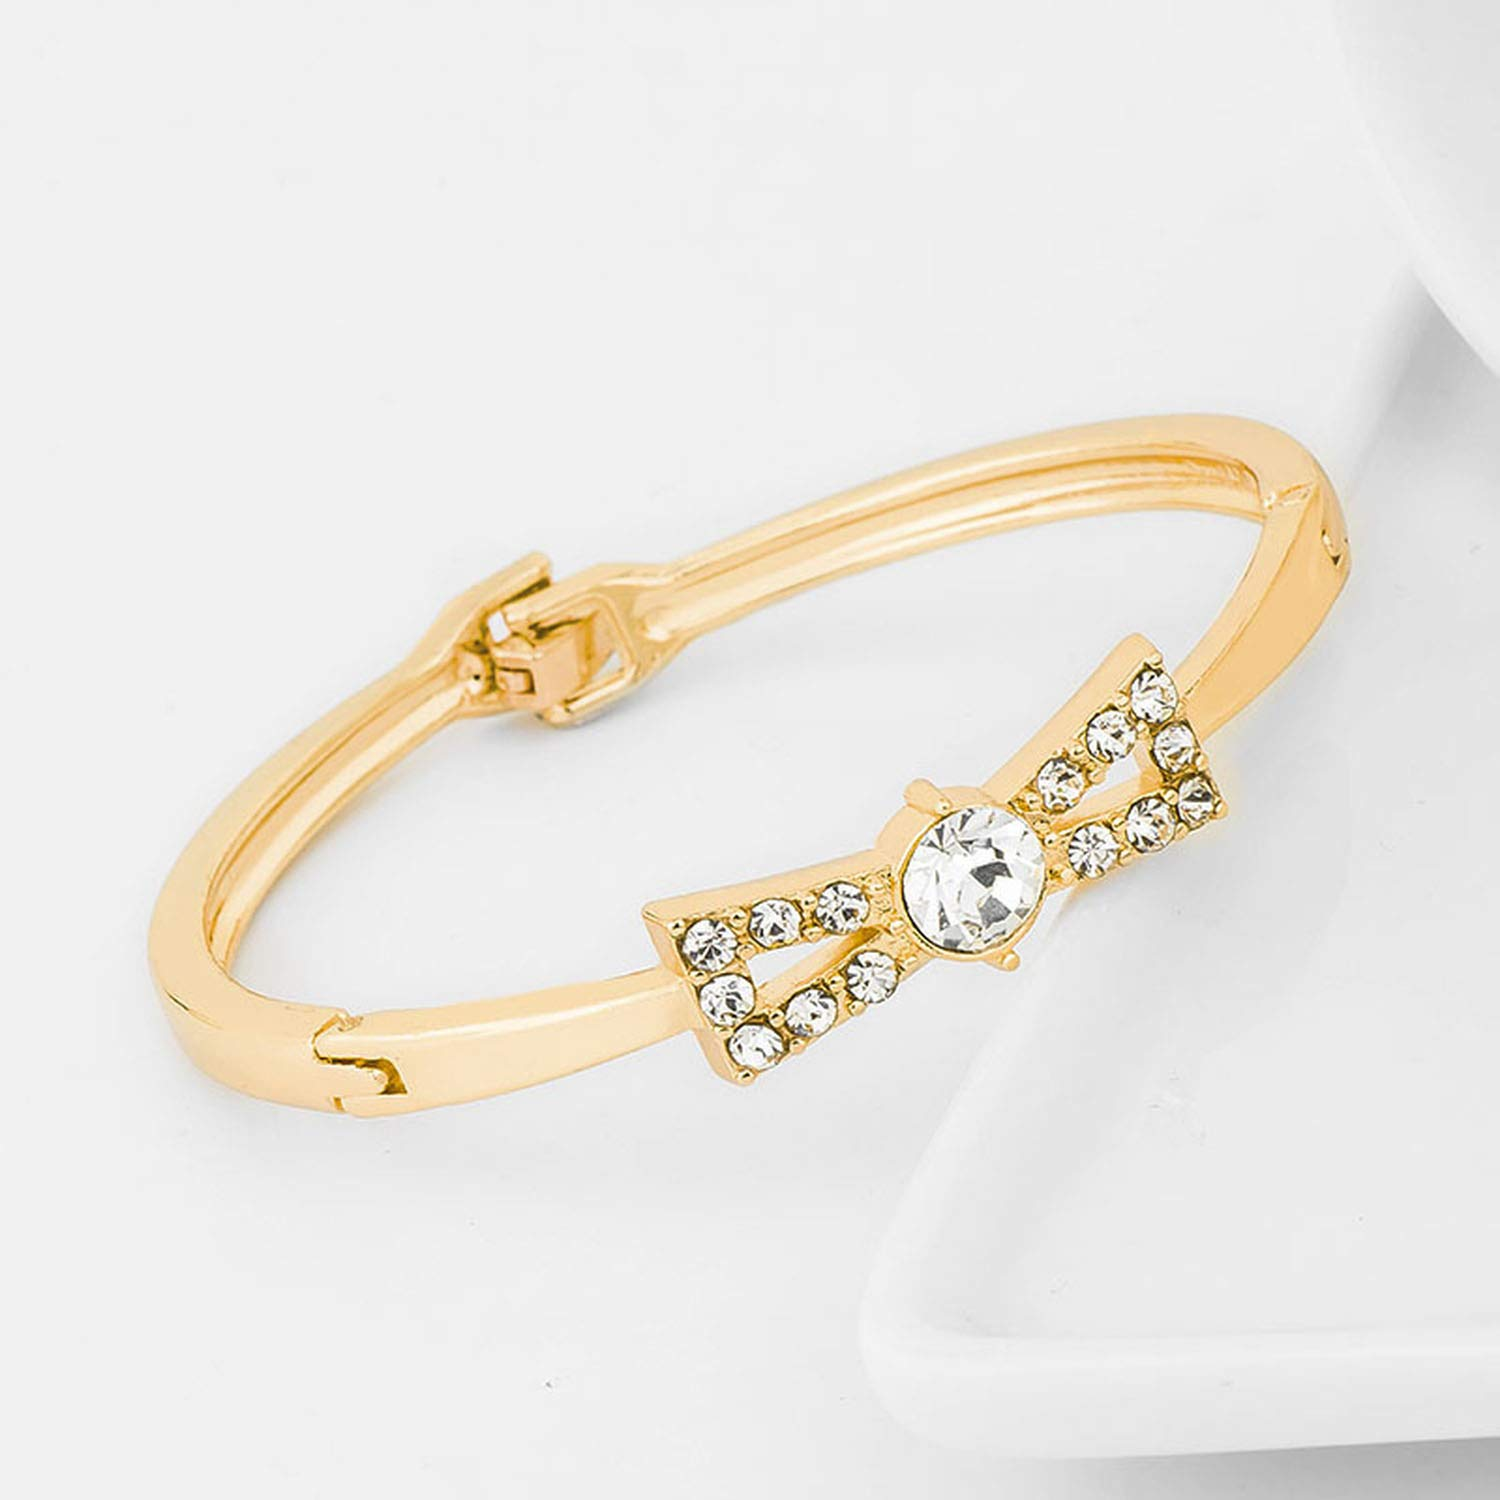 xiaoxiaoland Bowknot Shape Bangles Gold Color Crystal Bangle for Women Jewelry Female Bracelets Bangles